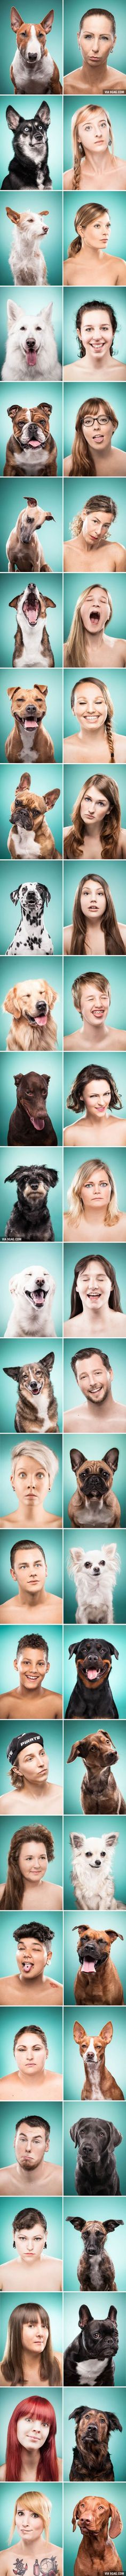 Photographer Captures Dog Owners Mimicking Their Best Friends And It's So Cute! Funny Animal Pictures, Funny Animals, Cute Animals, Animal Fun, Big Dogs, Dogs And Puppies, Doggies, Funny Dogs, Cute Dogs